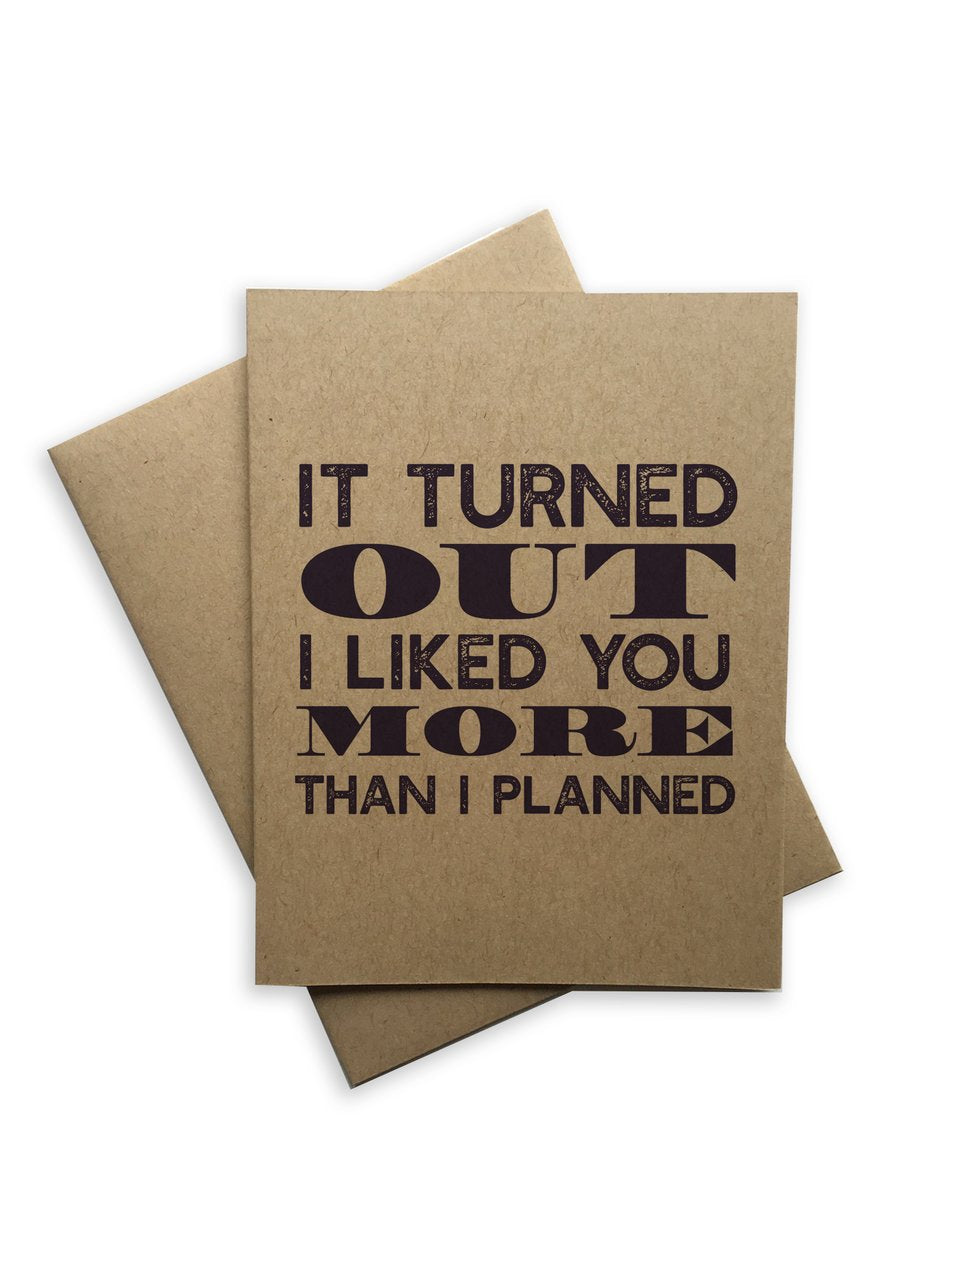 Tiramisu Card: It Turned Out I Liked You More Than I Planned